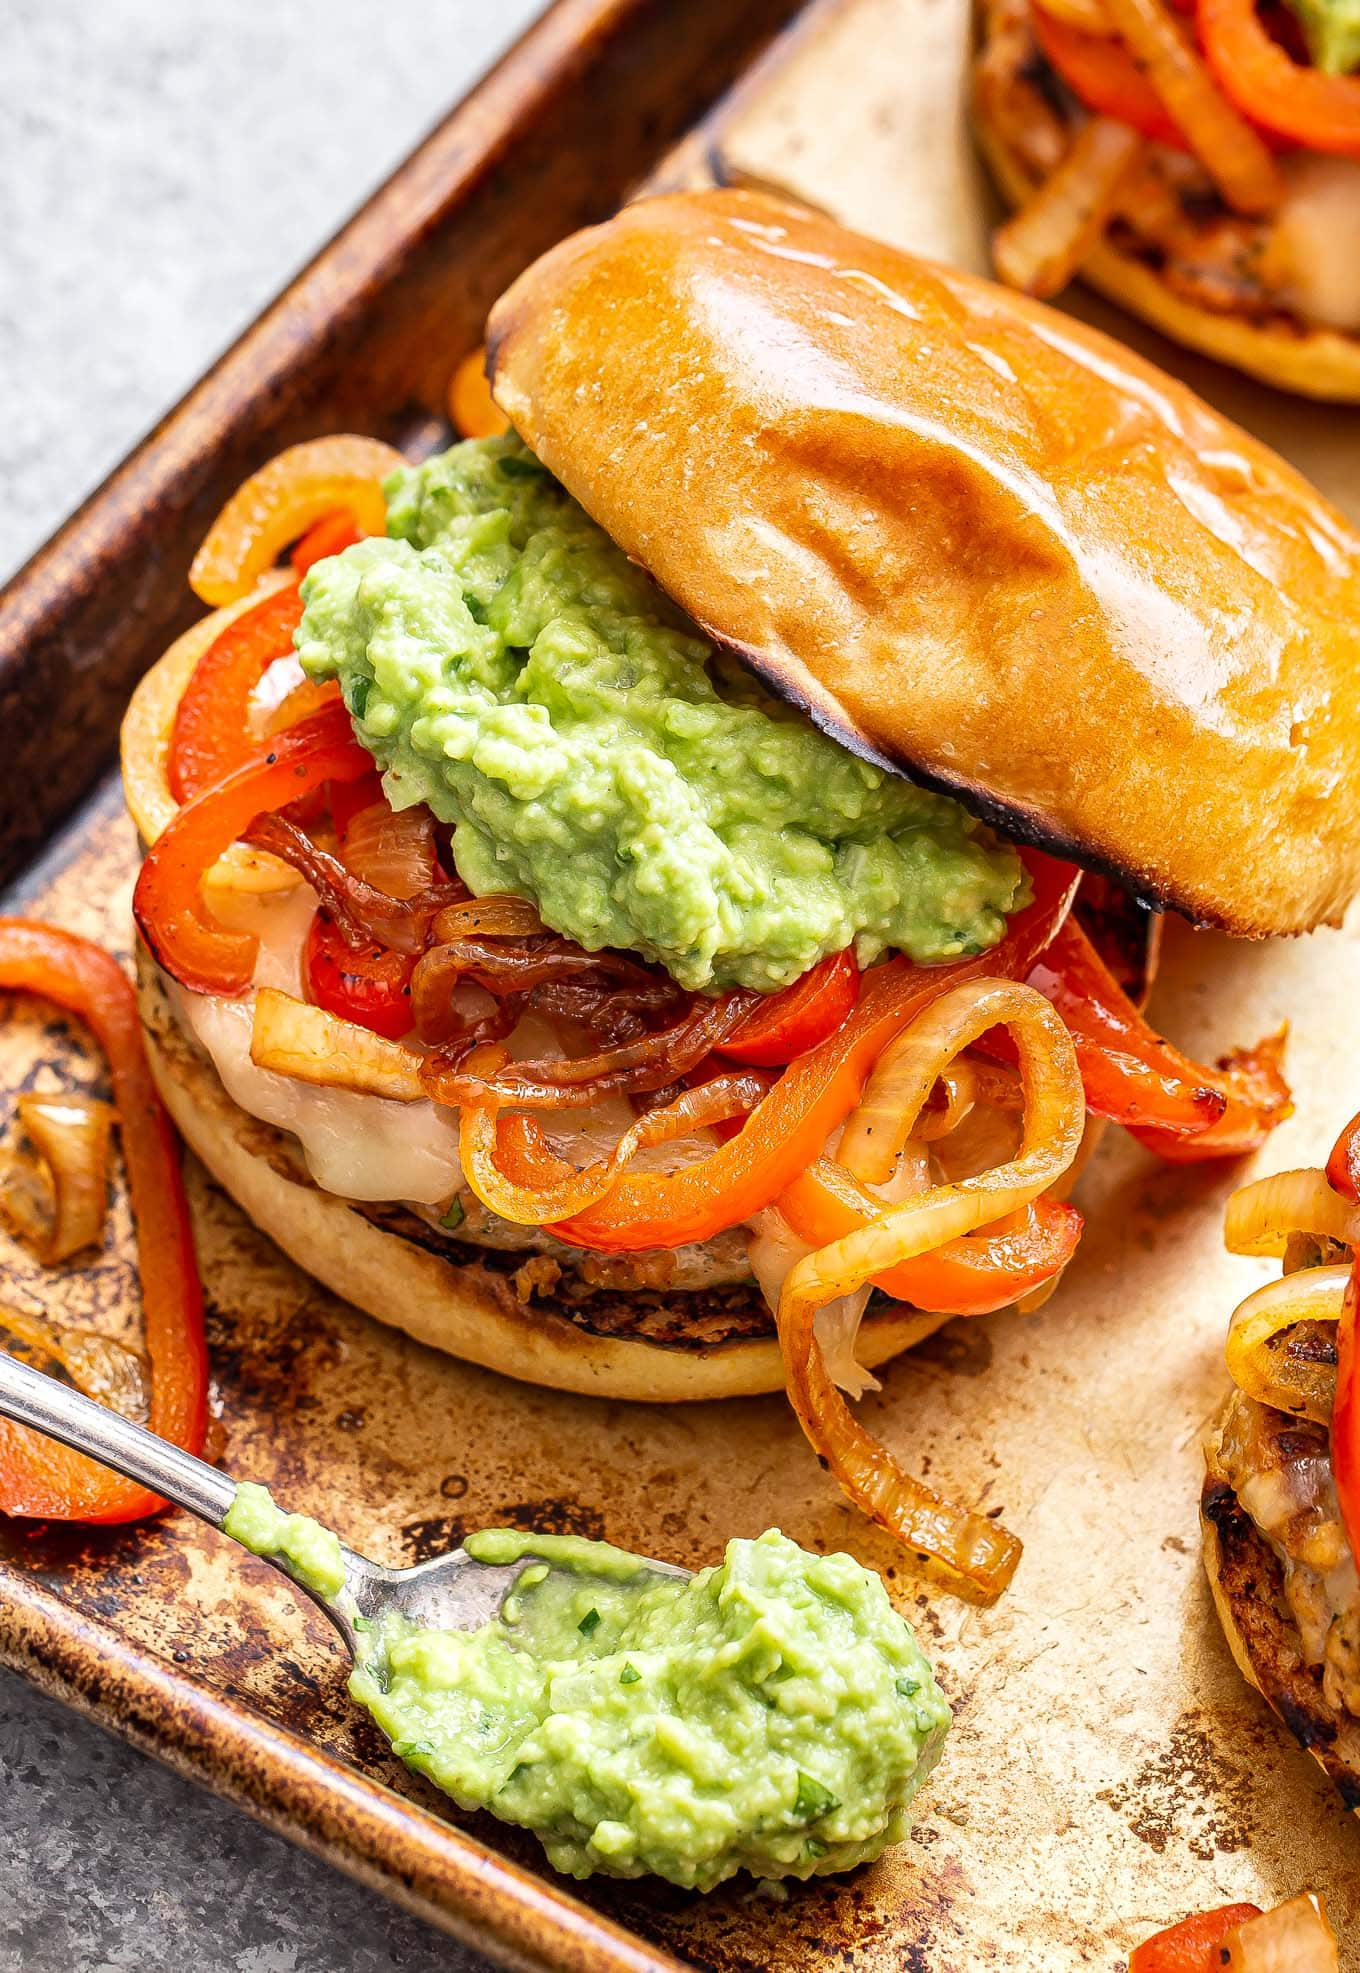 Chicken Fajita Burger topped with peppers, onions and guacamole with a spoon of guacamole in front of the burger.